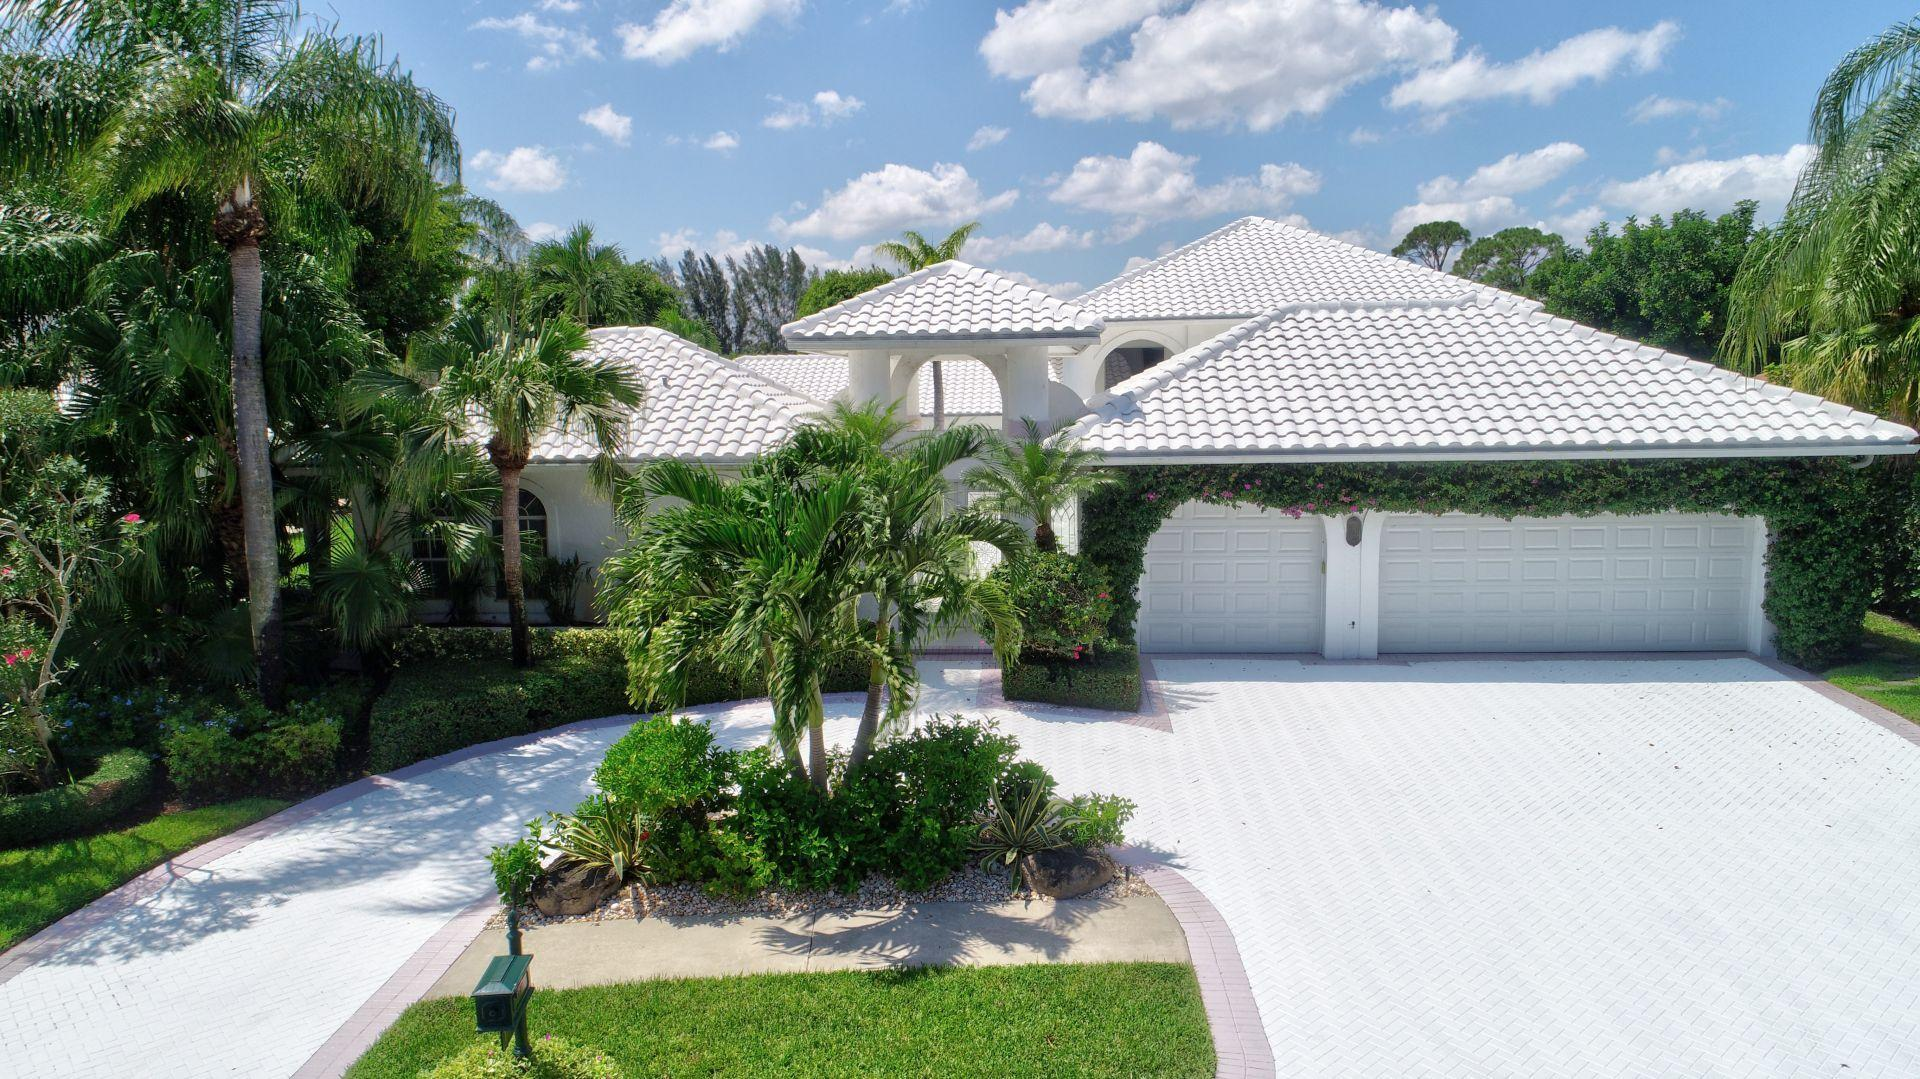 Delray Beach: The Laurels - listed at 1,100,000 (17826 Deauville Lane)